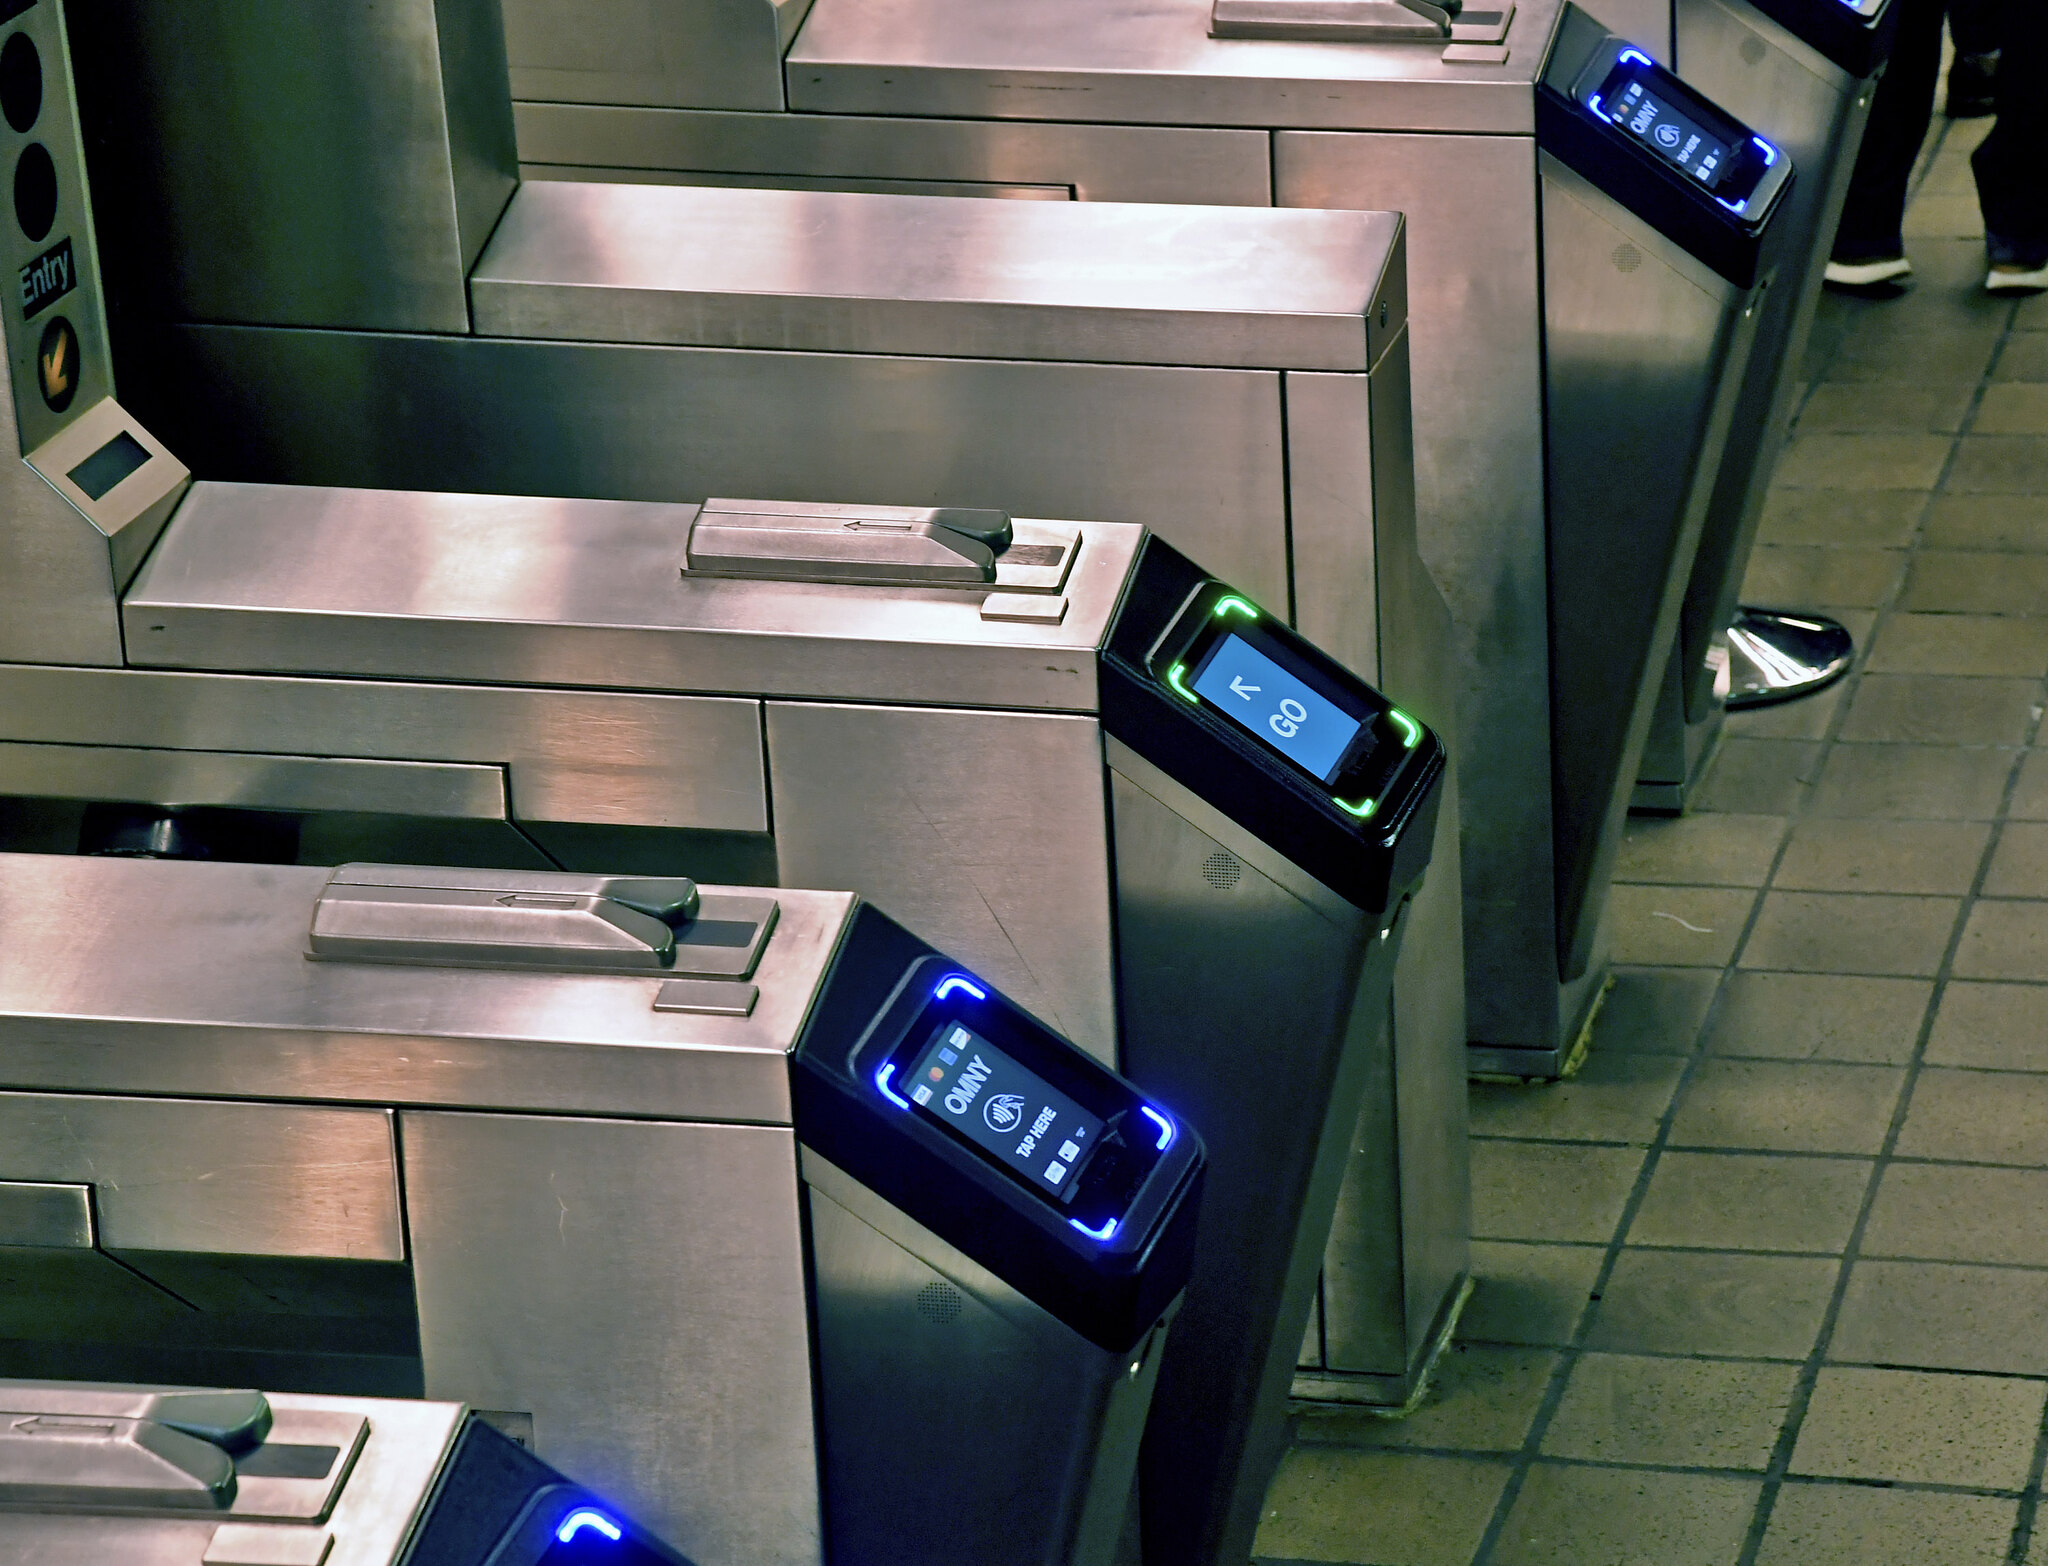 New York City subway turnstiles equipped with new contactless payment readers.